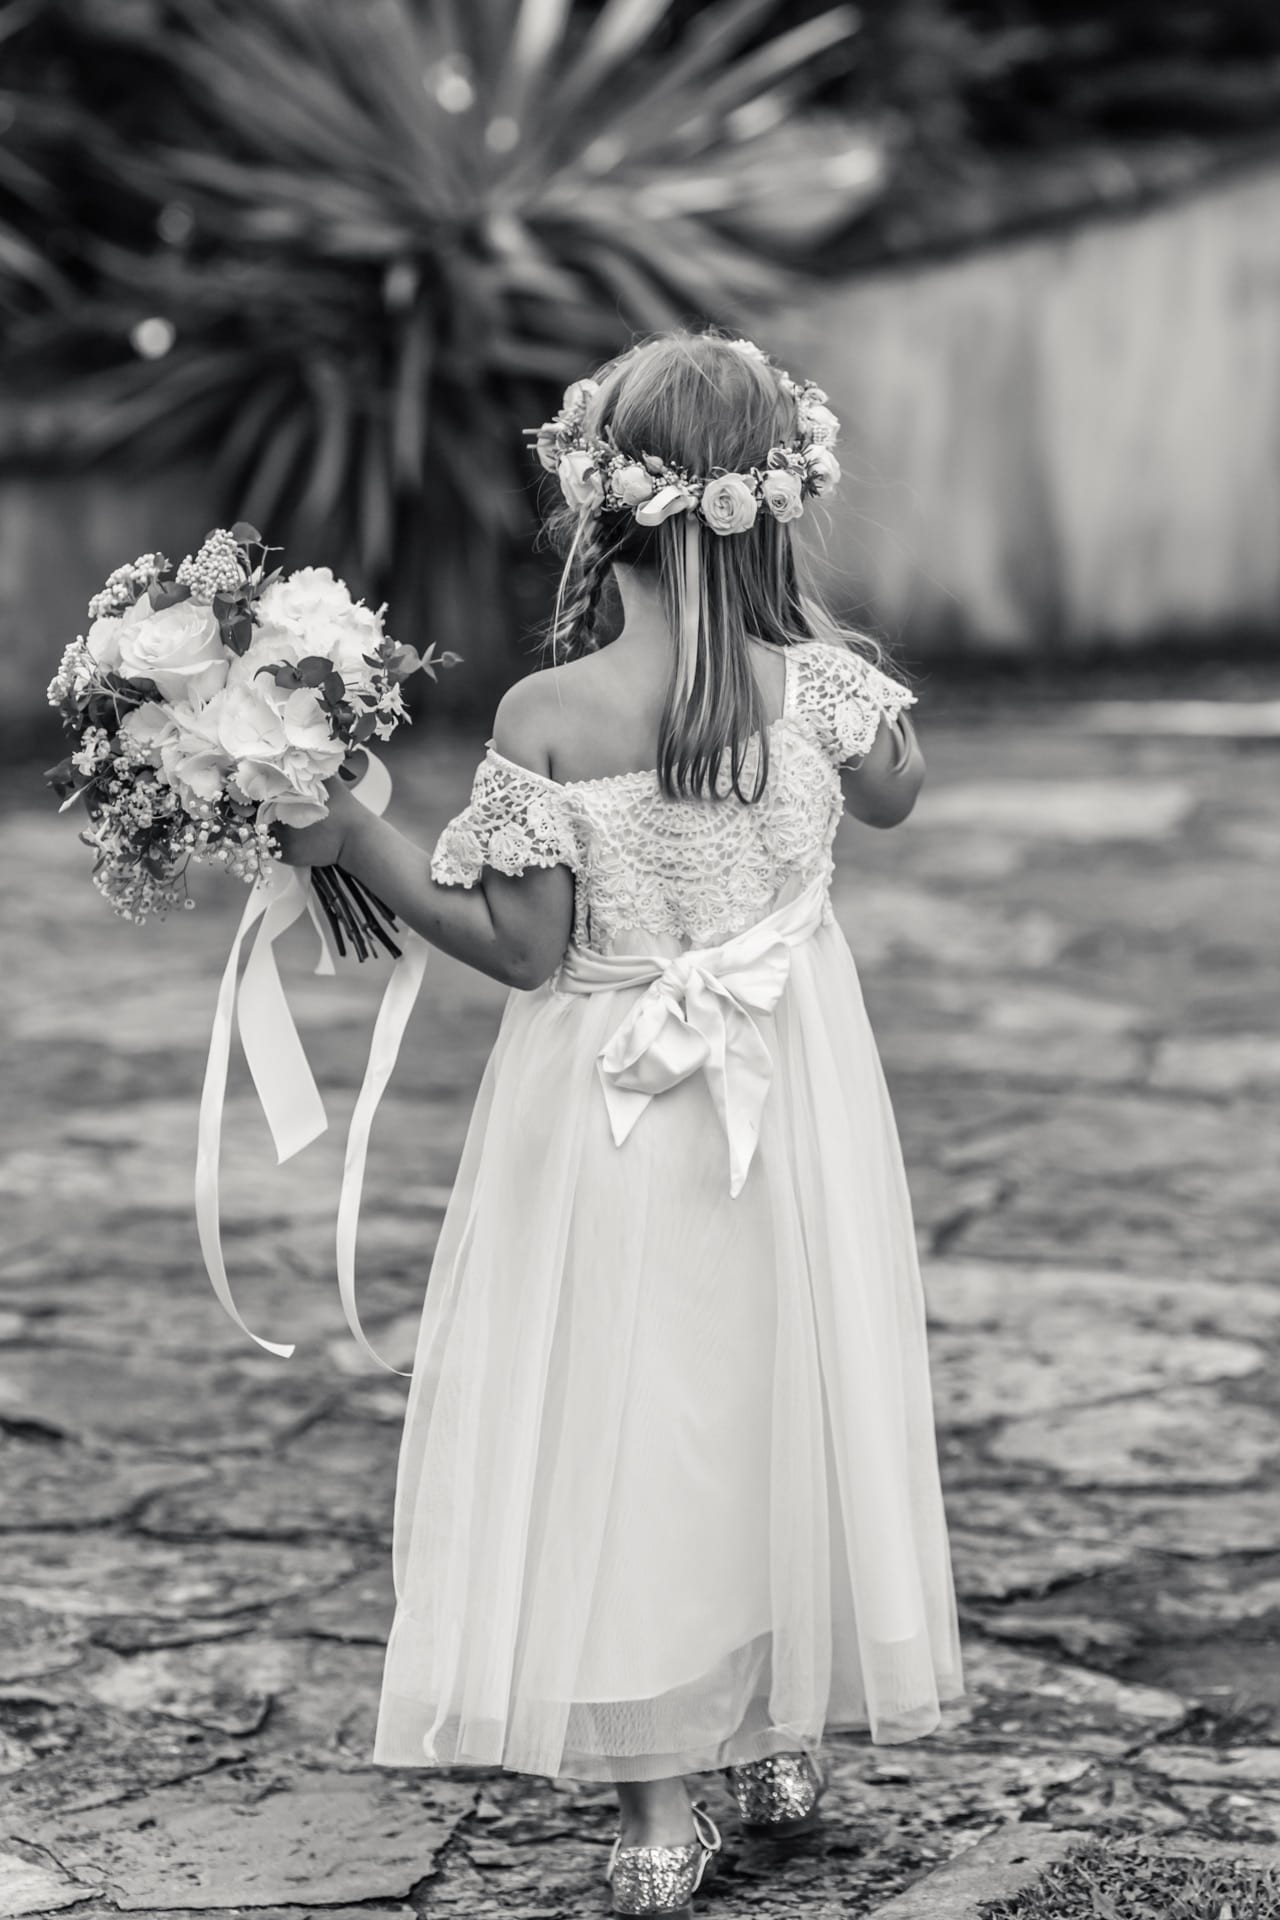 https://s3-eu-central-1.amazonaws.com/righiphotography-com/wp-content/uploads/2020/02/02183125/Wedding-Photo-No-Pose-Studio-Fotografico-Righi-RIGHI-118.jpg